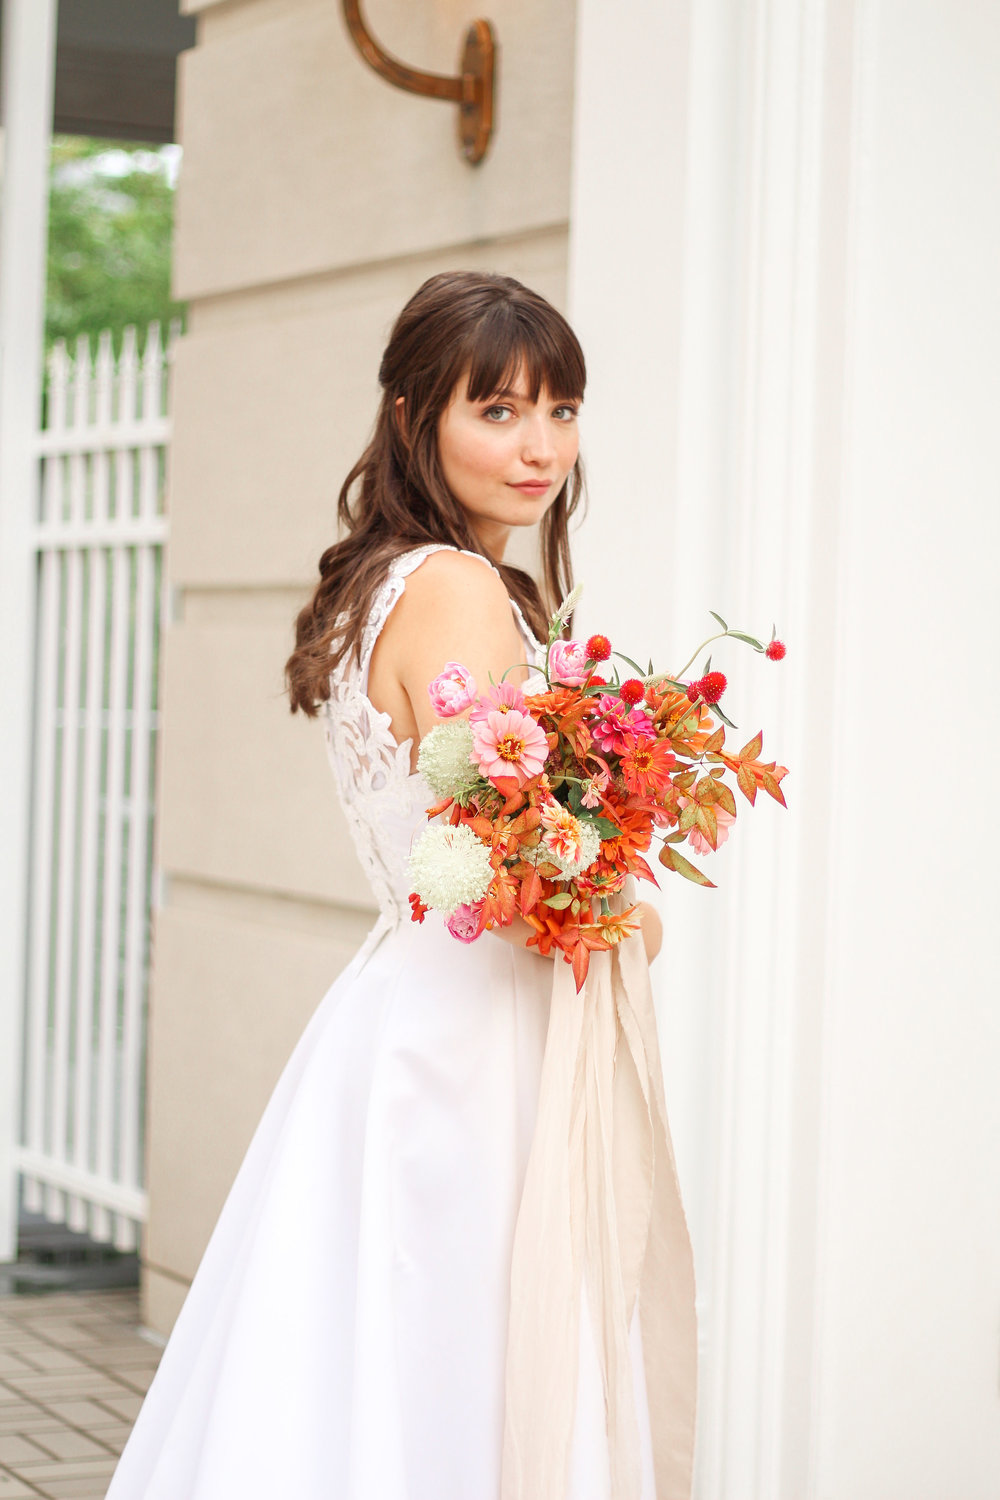 tallahassee_florist_wedding_pink_bouquet_fall_wedding_inspiration.jpg